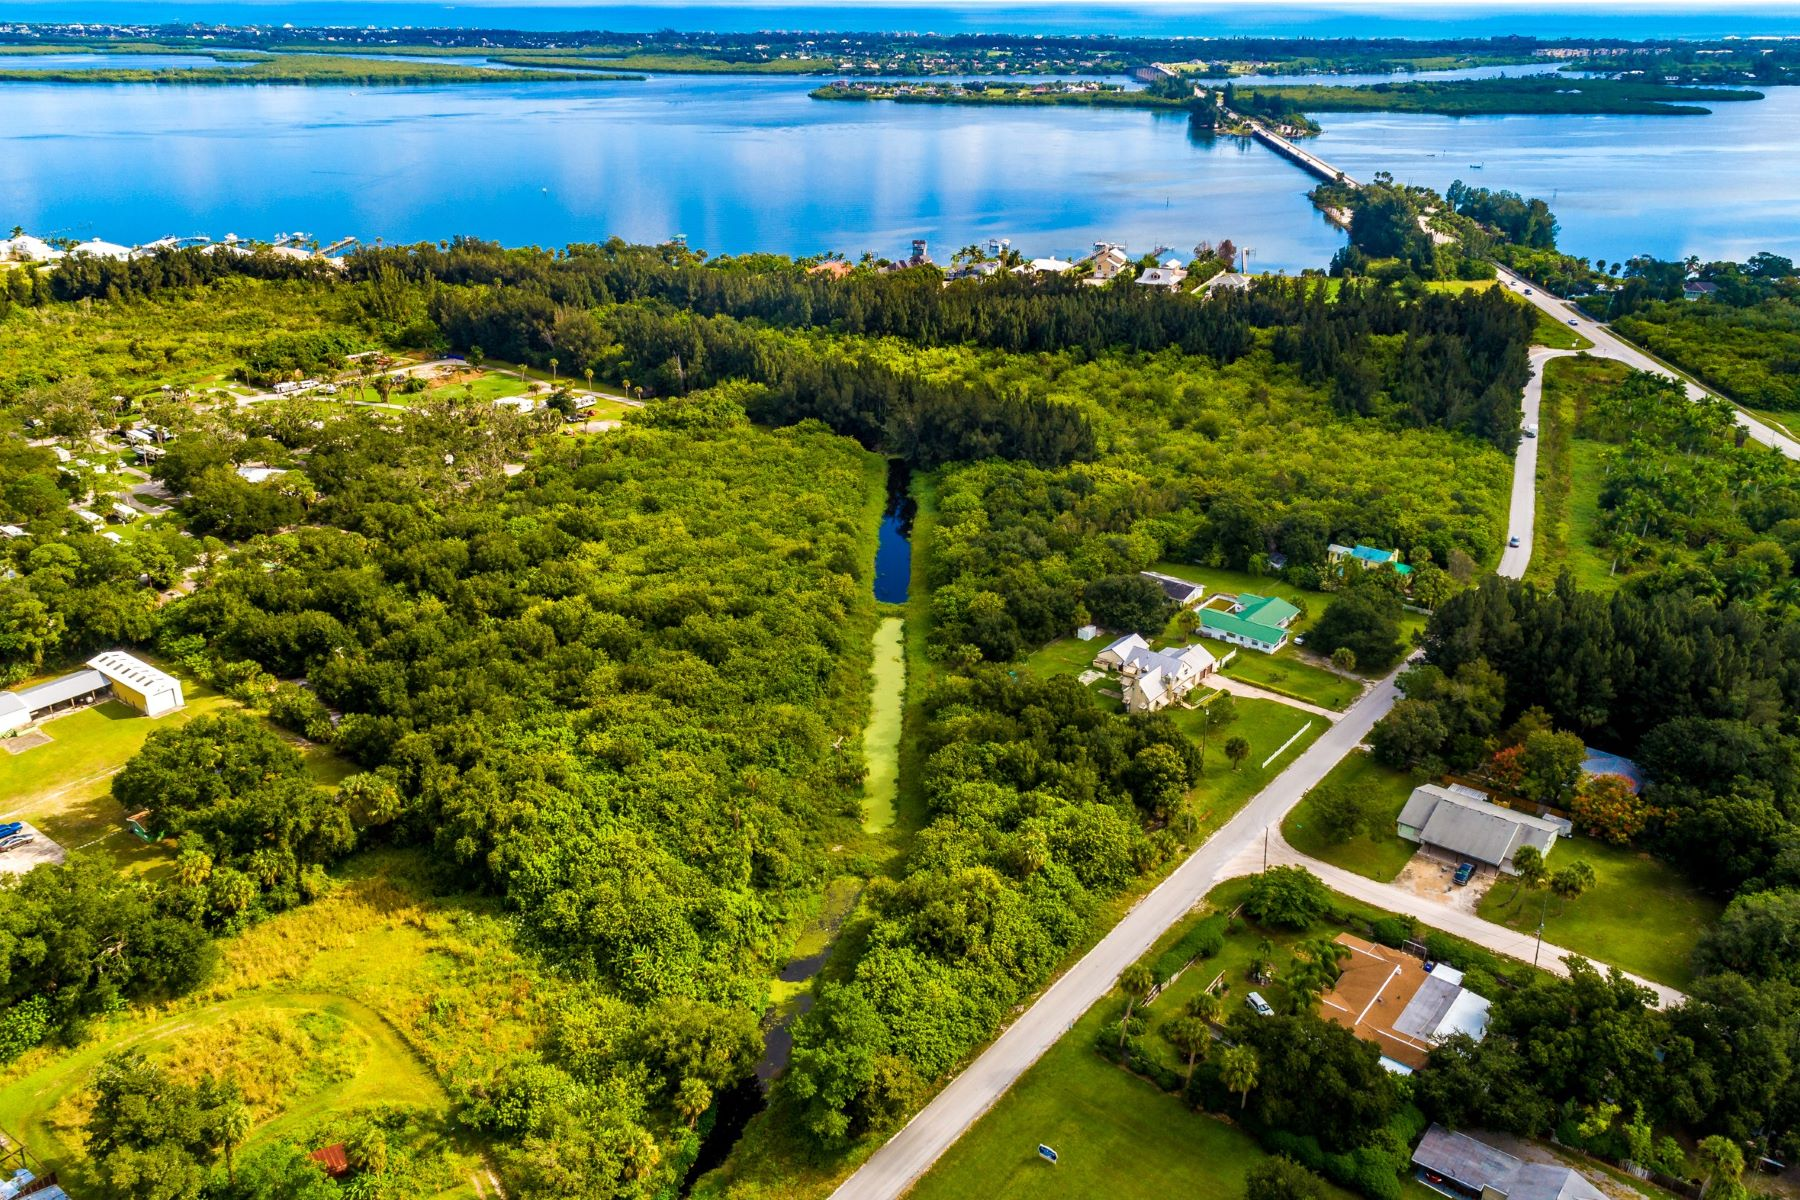 Property for Sale at 4790 87th Street, Sebastian, FL 4790 87th Street Sebastian, Florida 32958 United States